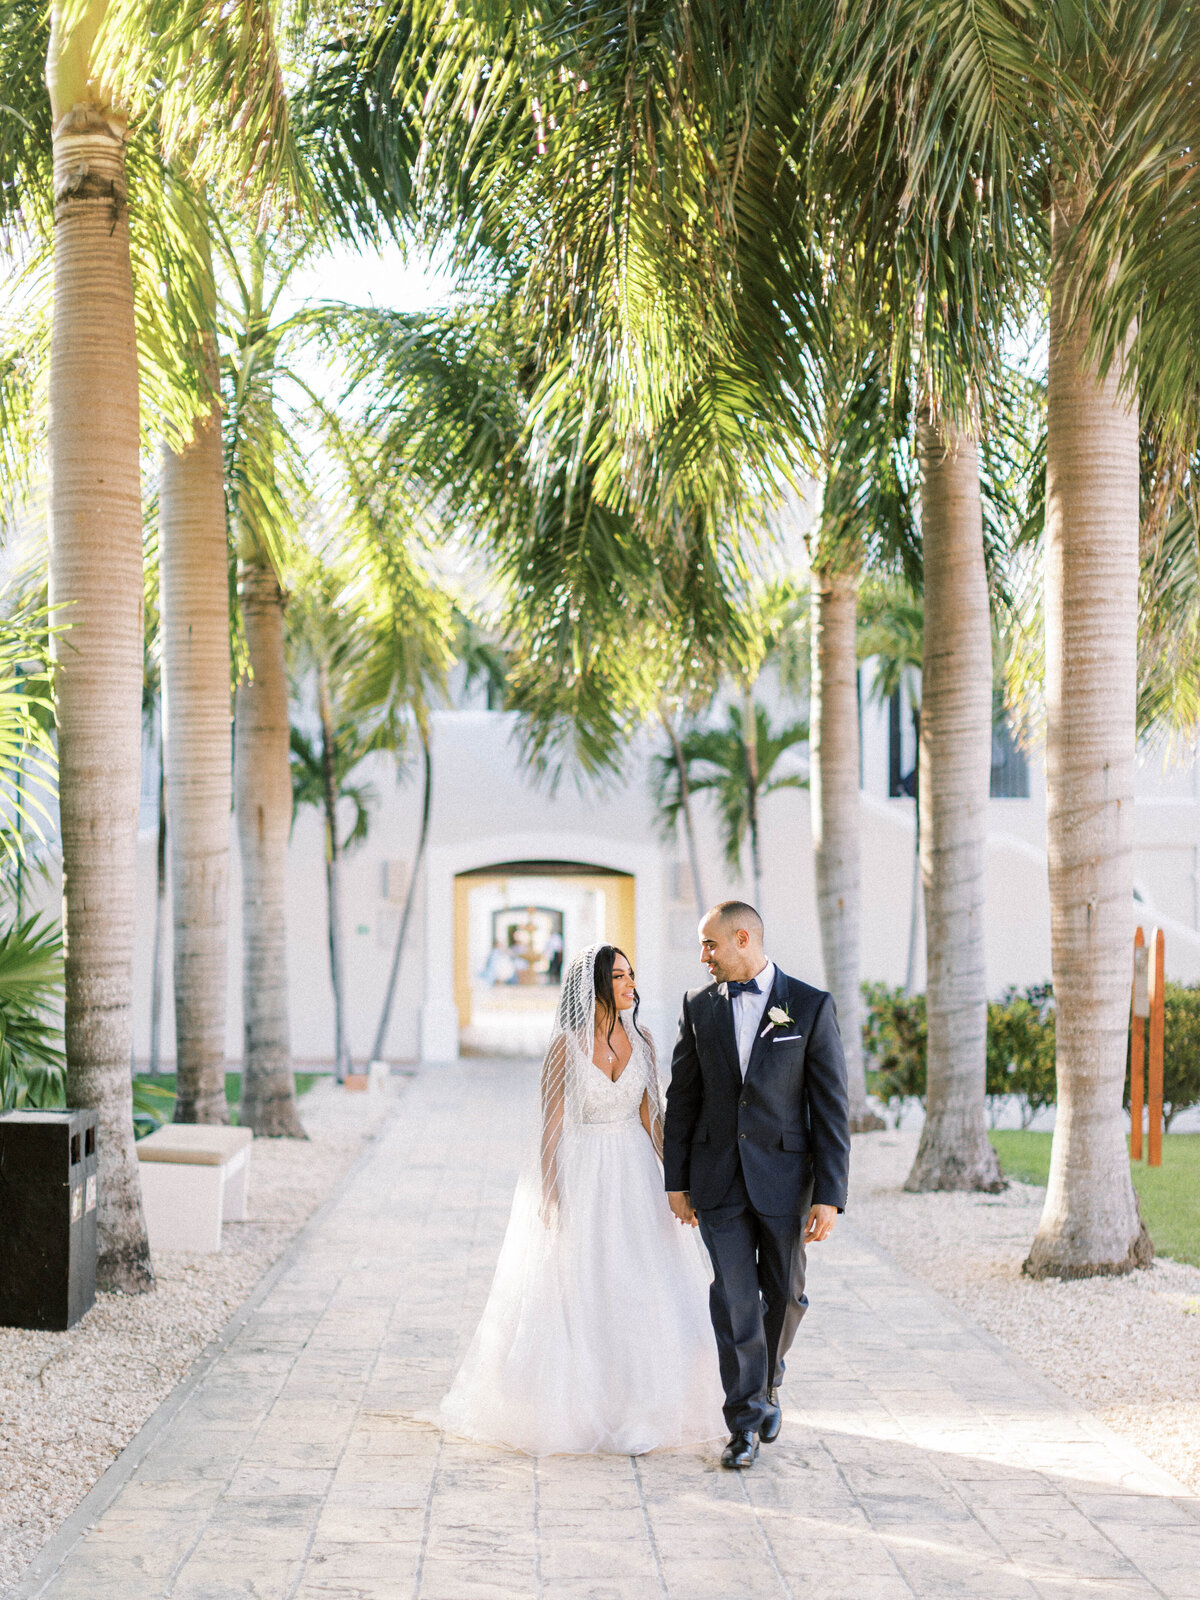 Tiffaney Childs Photography-Florida Wedding Photographer-Stephanie + Juan-Dreams Tulum Wedding-14